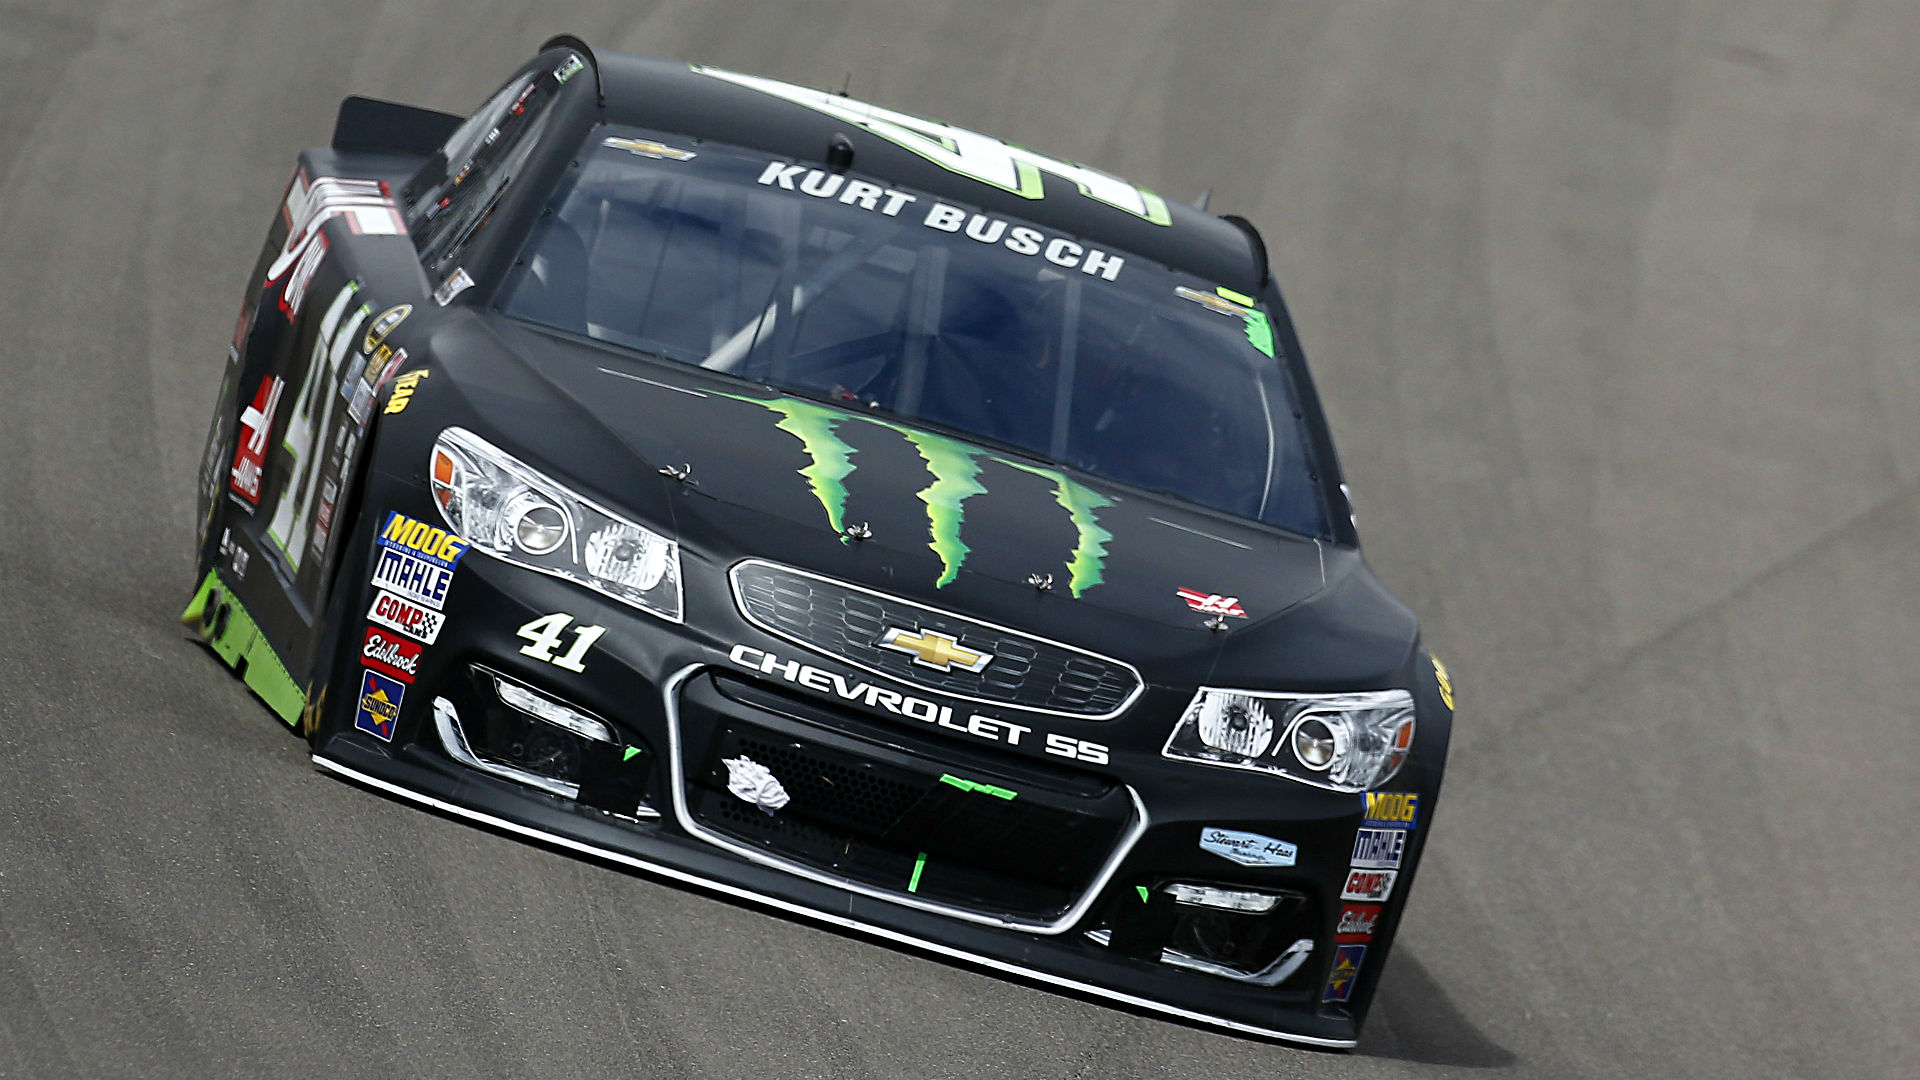 NASCAR starting lineup at Michigan: Kurt Busch on pole, Kyle Larson starts 26th